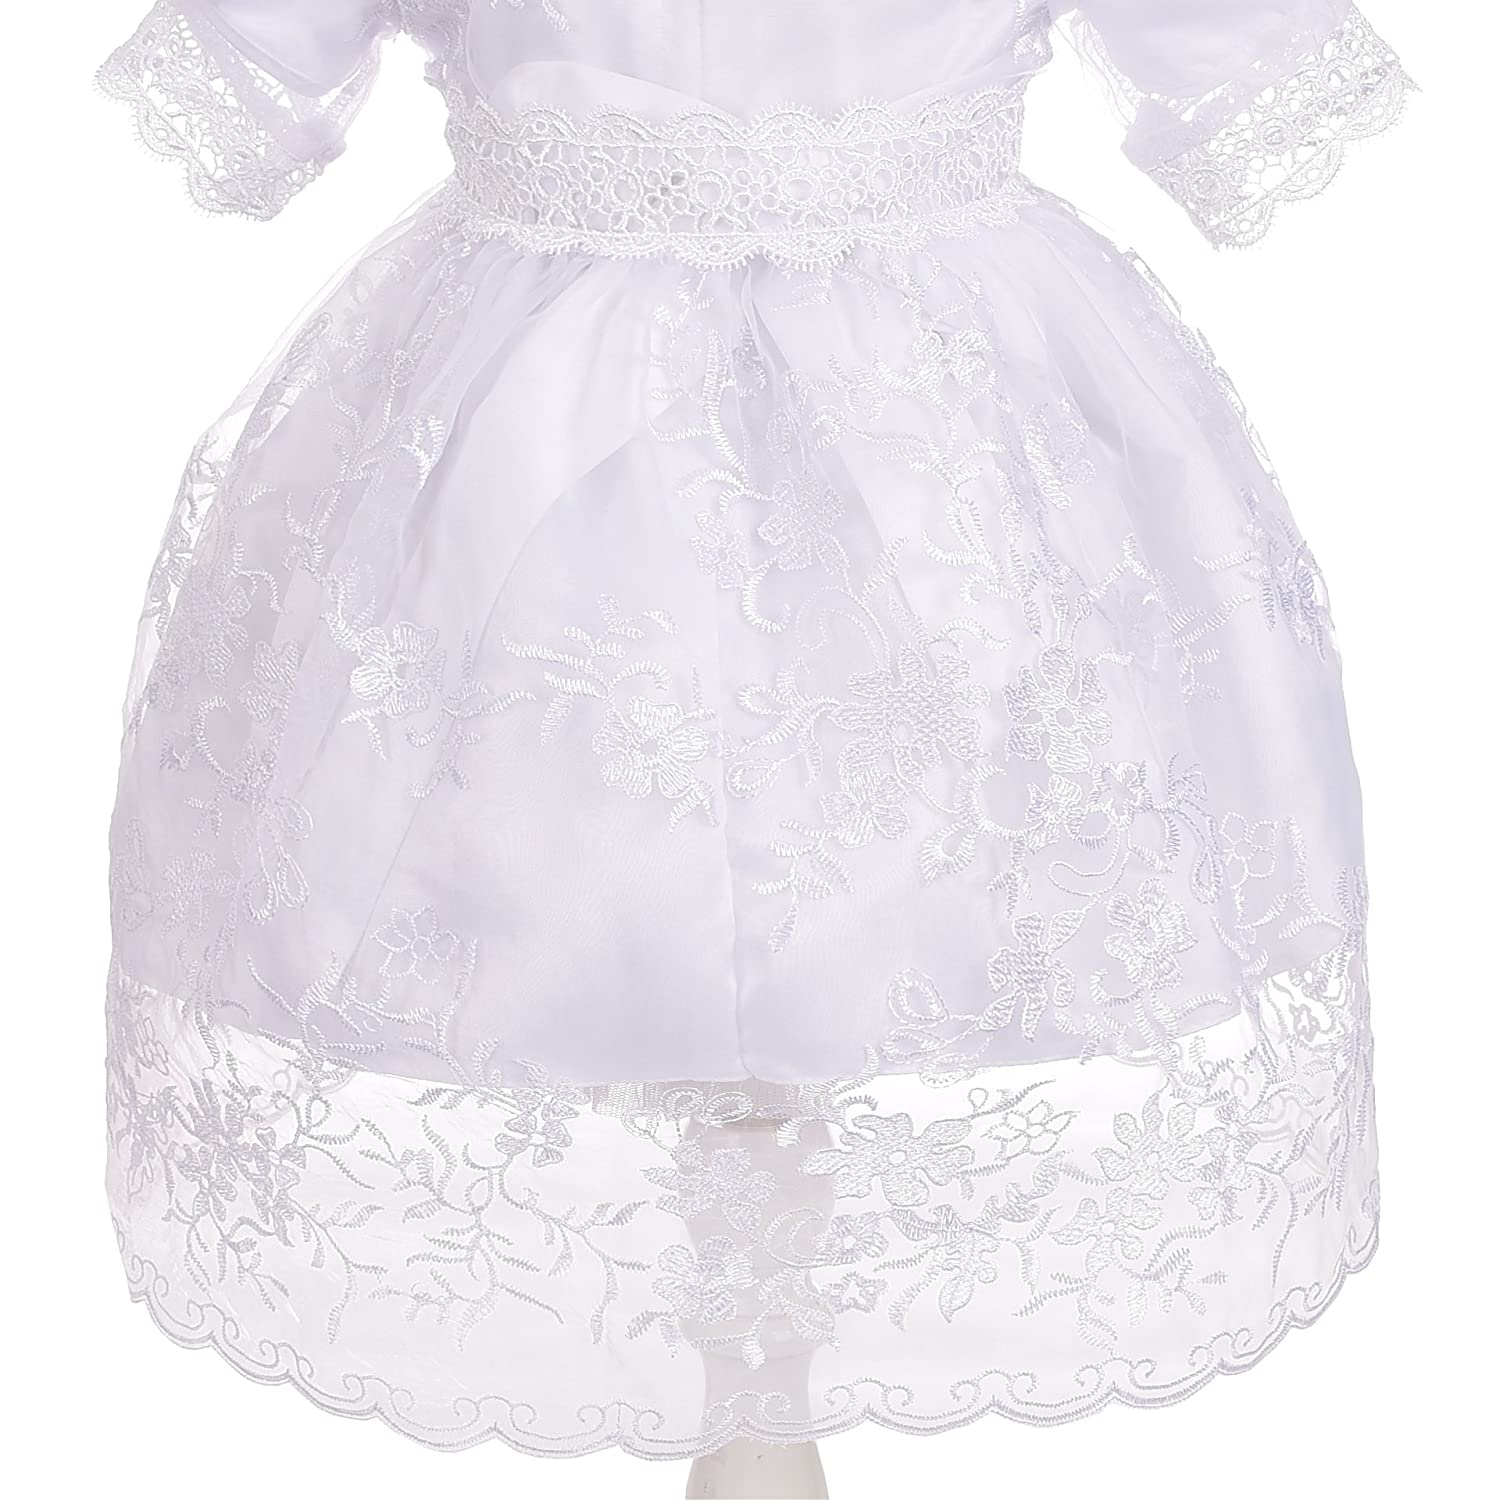 Dressy Daisy Baby Girls Baptism Dress Christening Gown with Cape Bonnet Embroidered Christening Outfit for Girls